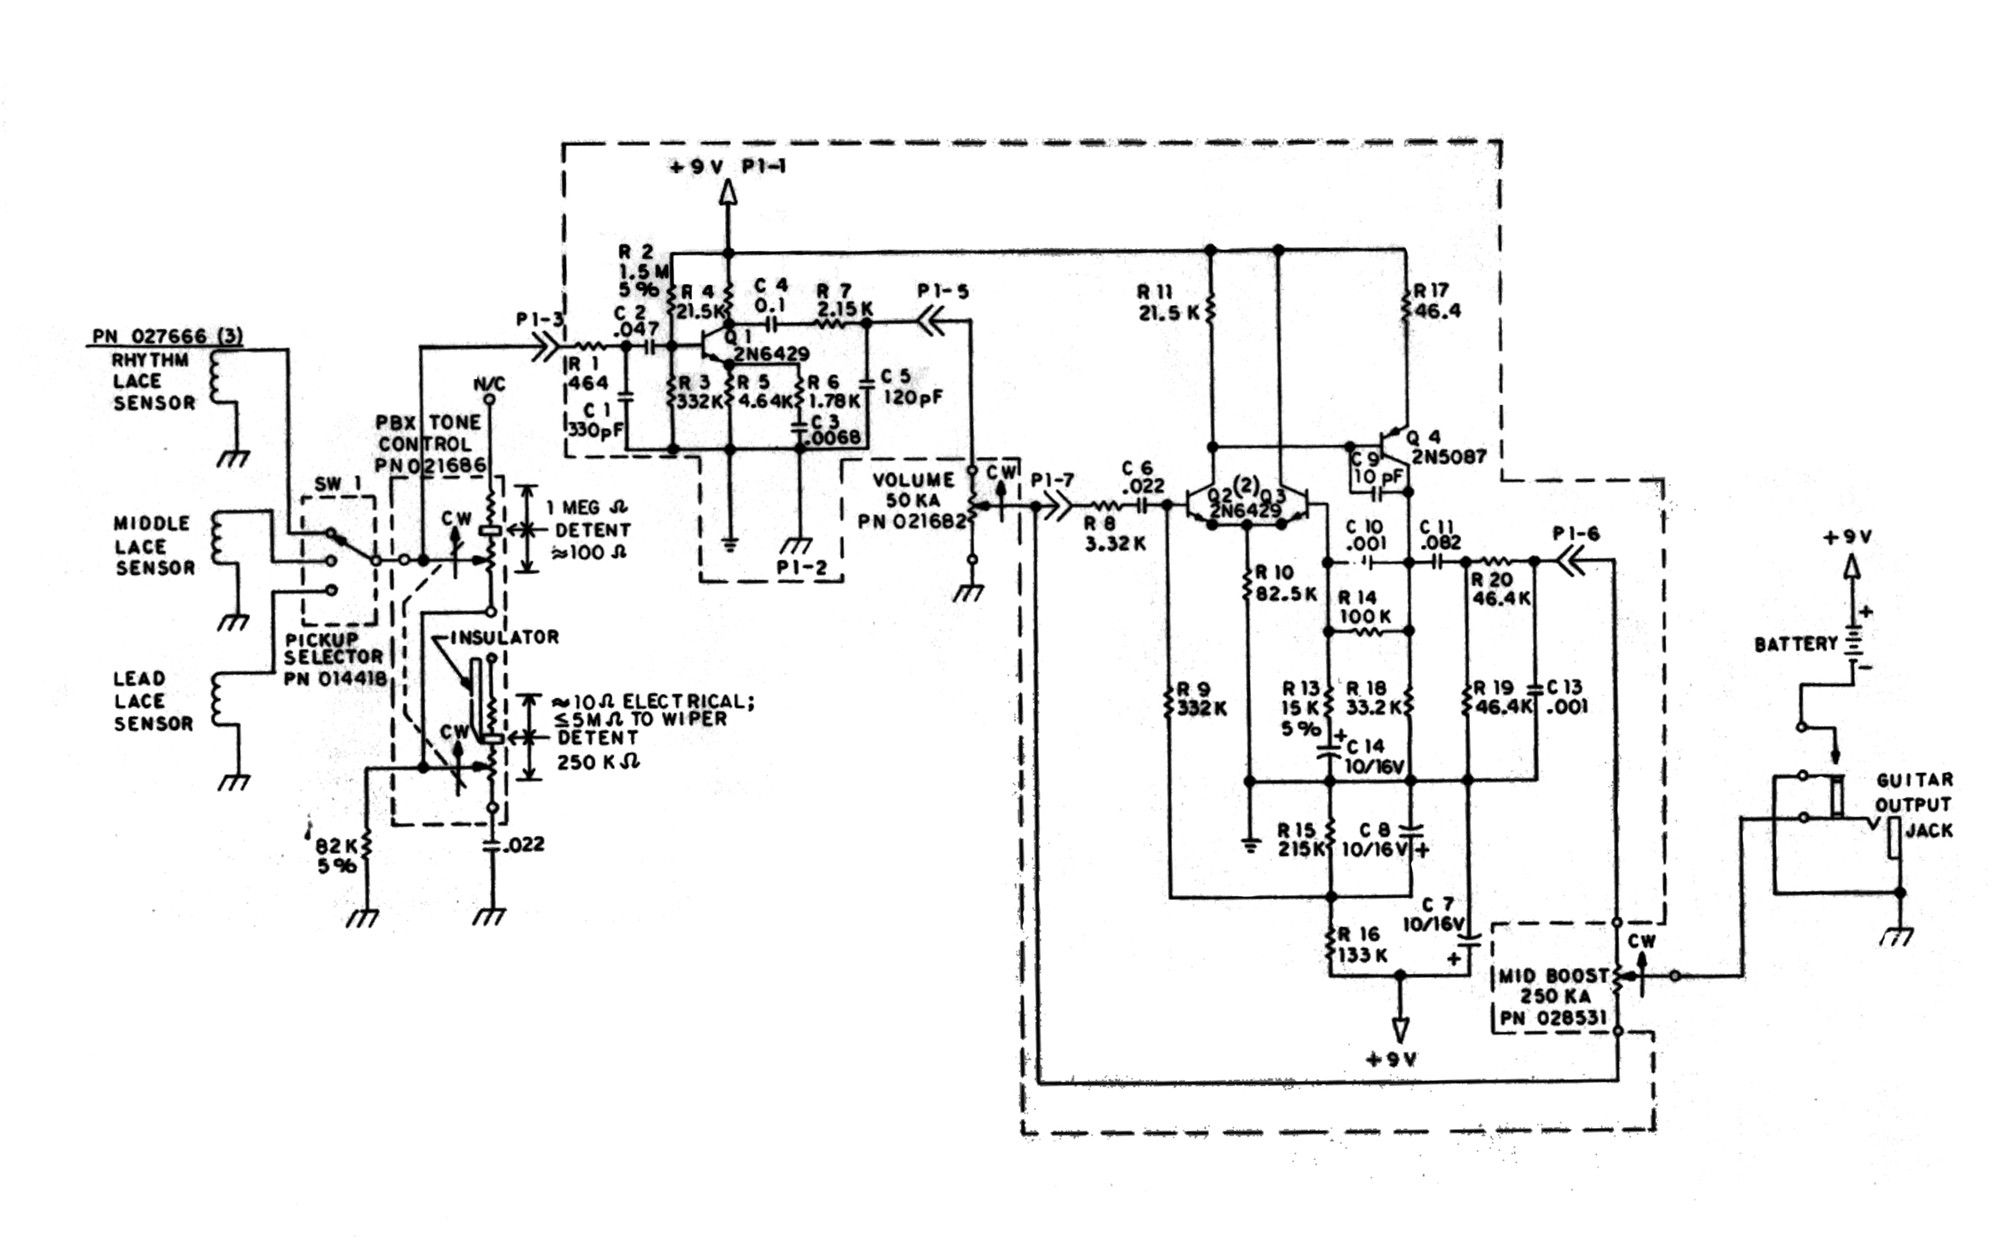 hight resolution of fender noiseless jazz bass pickups wiring diagram fresh stewmac intended for stewmac wiring diagrams